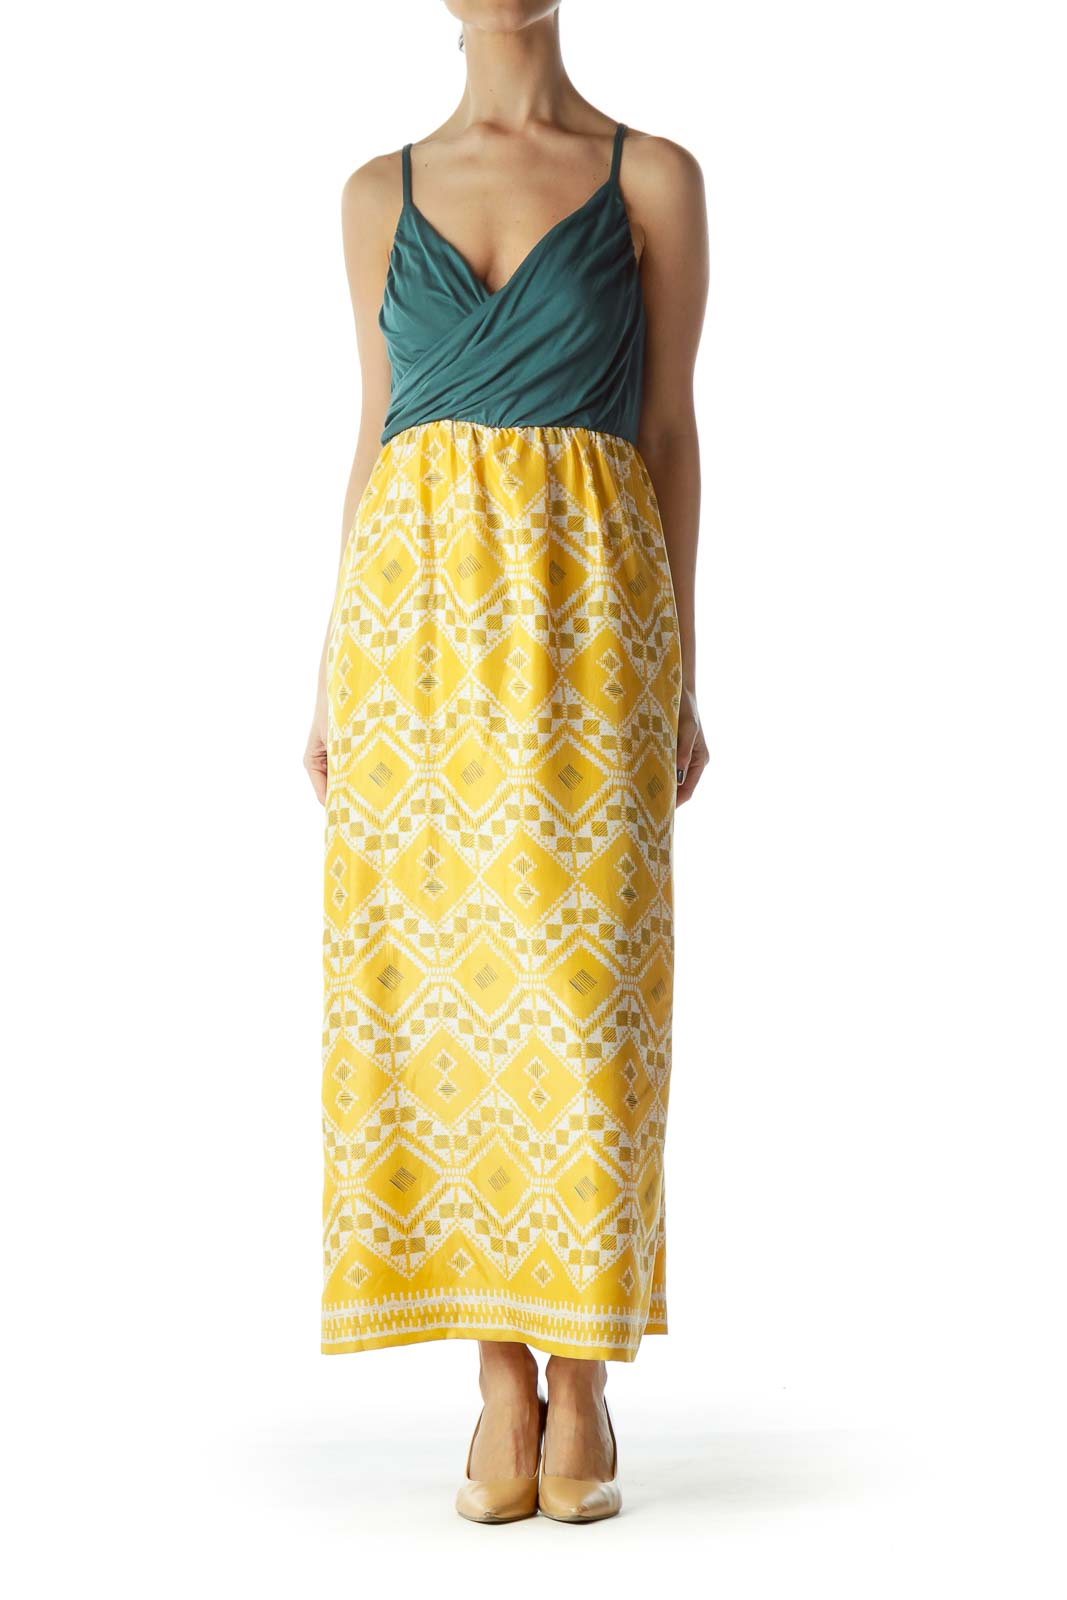 Yellow and Turquoise Midi Dress Front